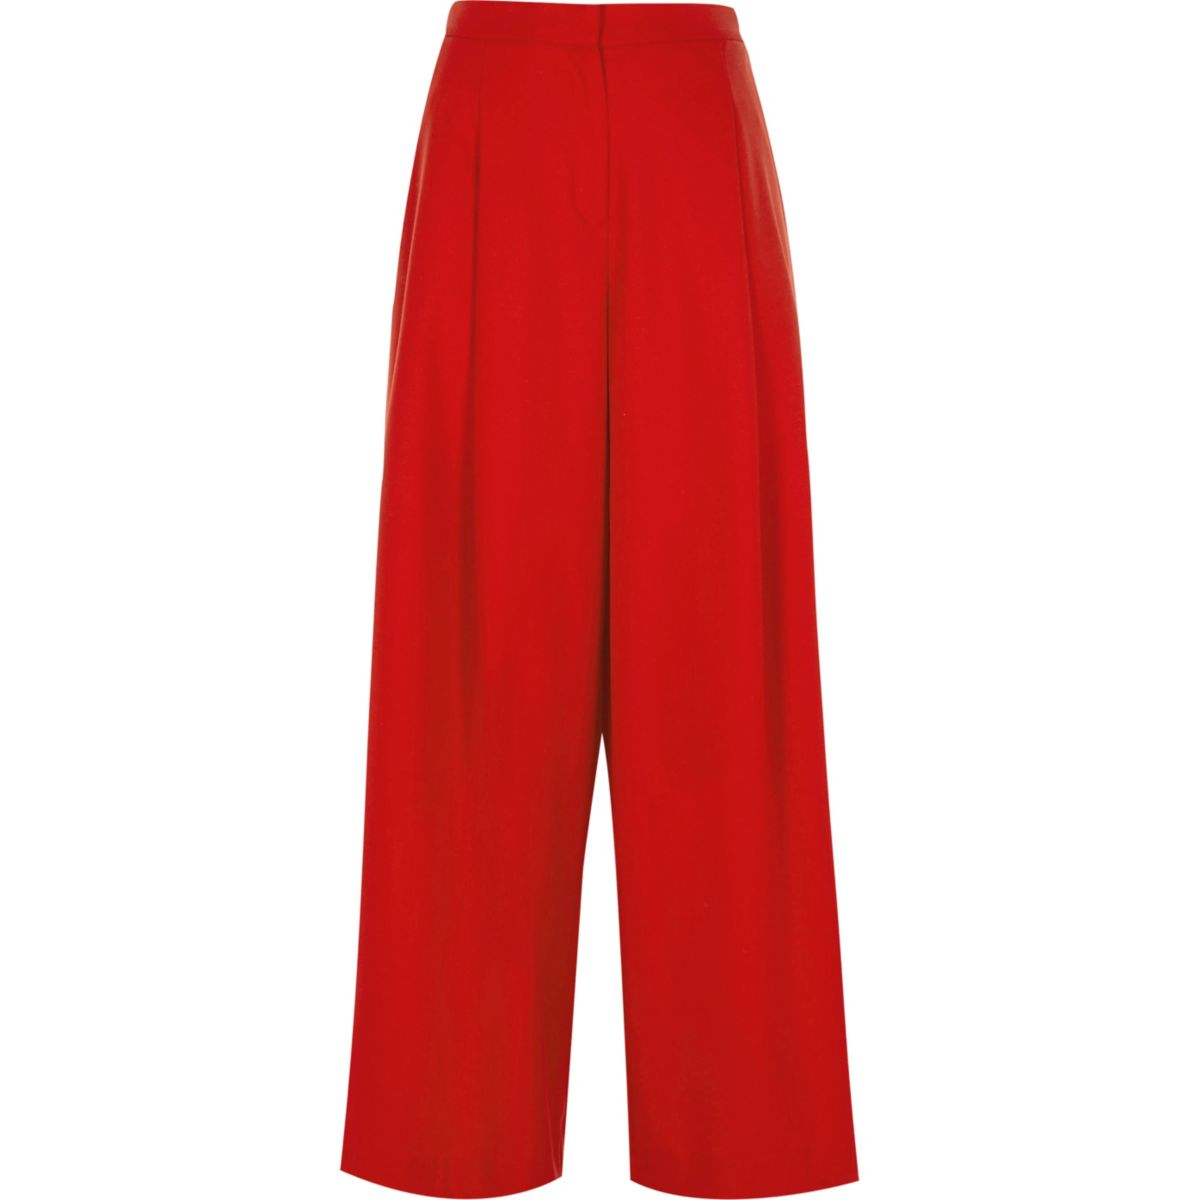 Shop red wide leg pants at Neiman Marcus, where you will find free shipping on the latest in fashion from top designers.